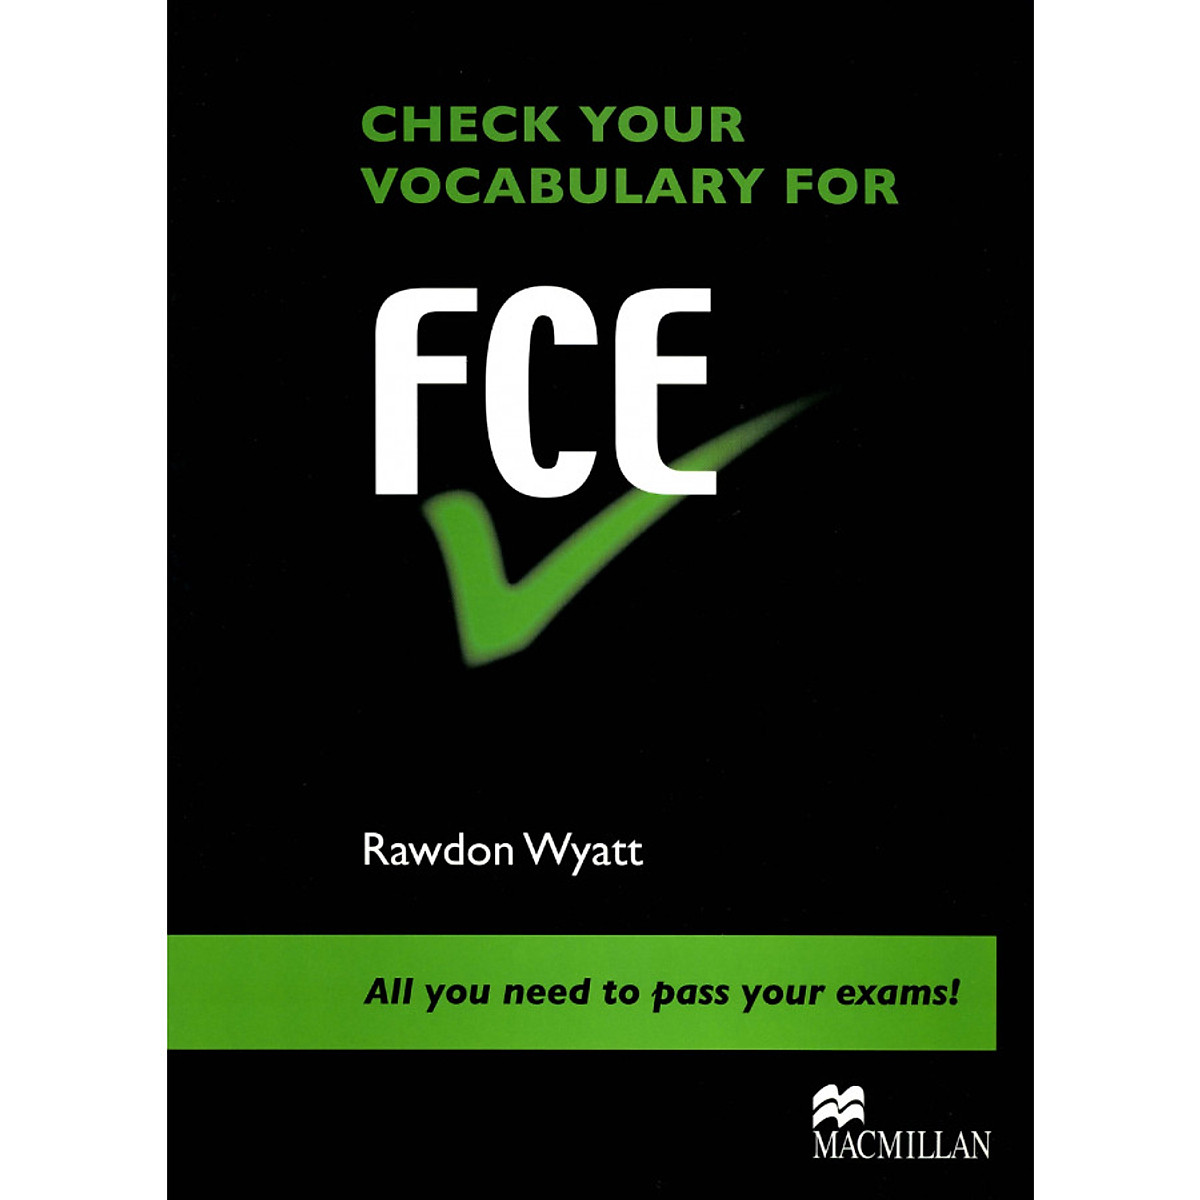 Hình đại diện sản phẩm Check Your Vocabulary for FCE: All You Need to Pass Your Exams! (Check Your Vocabulary Workbooks)